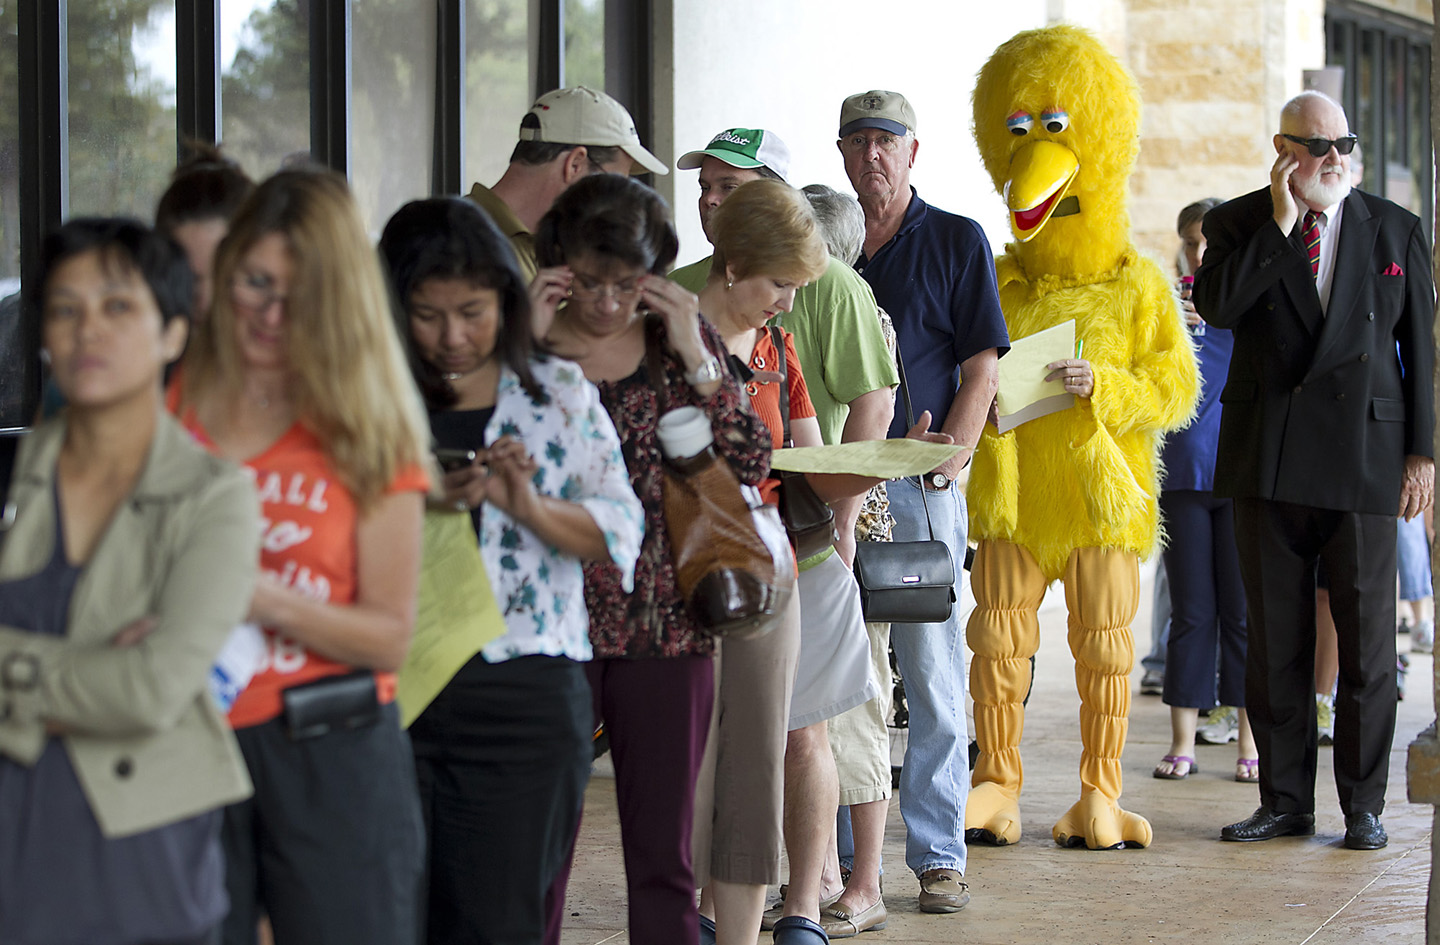 Rbz kelso big bird voting 02